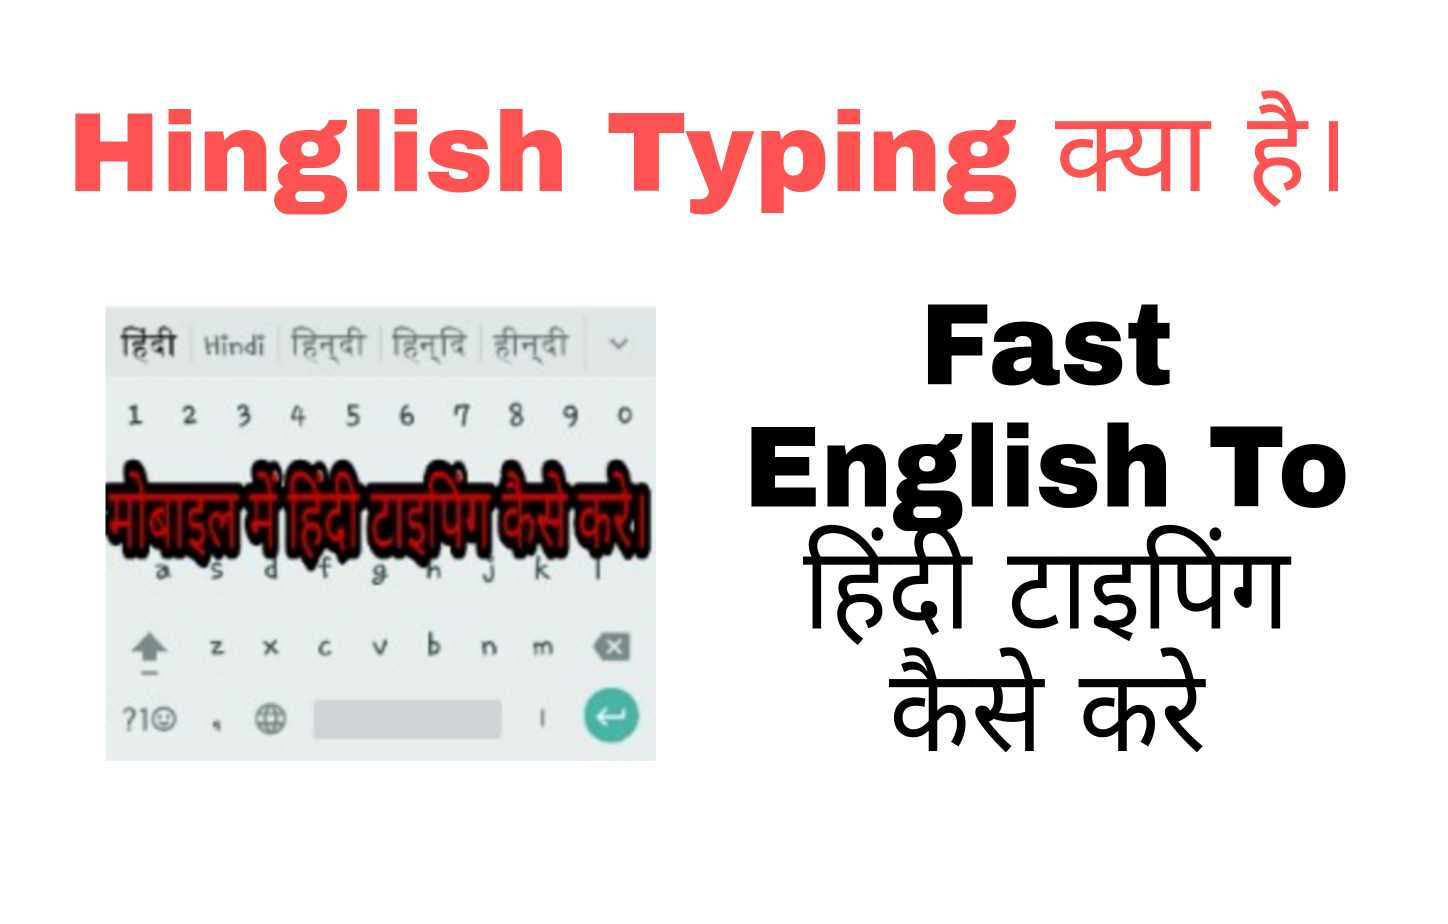 Mobile-me-fast-hinglish-typing-kaise-kare